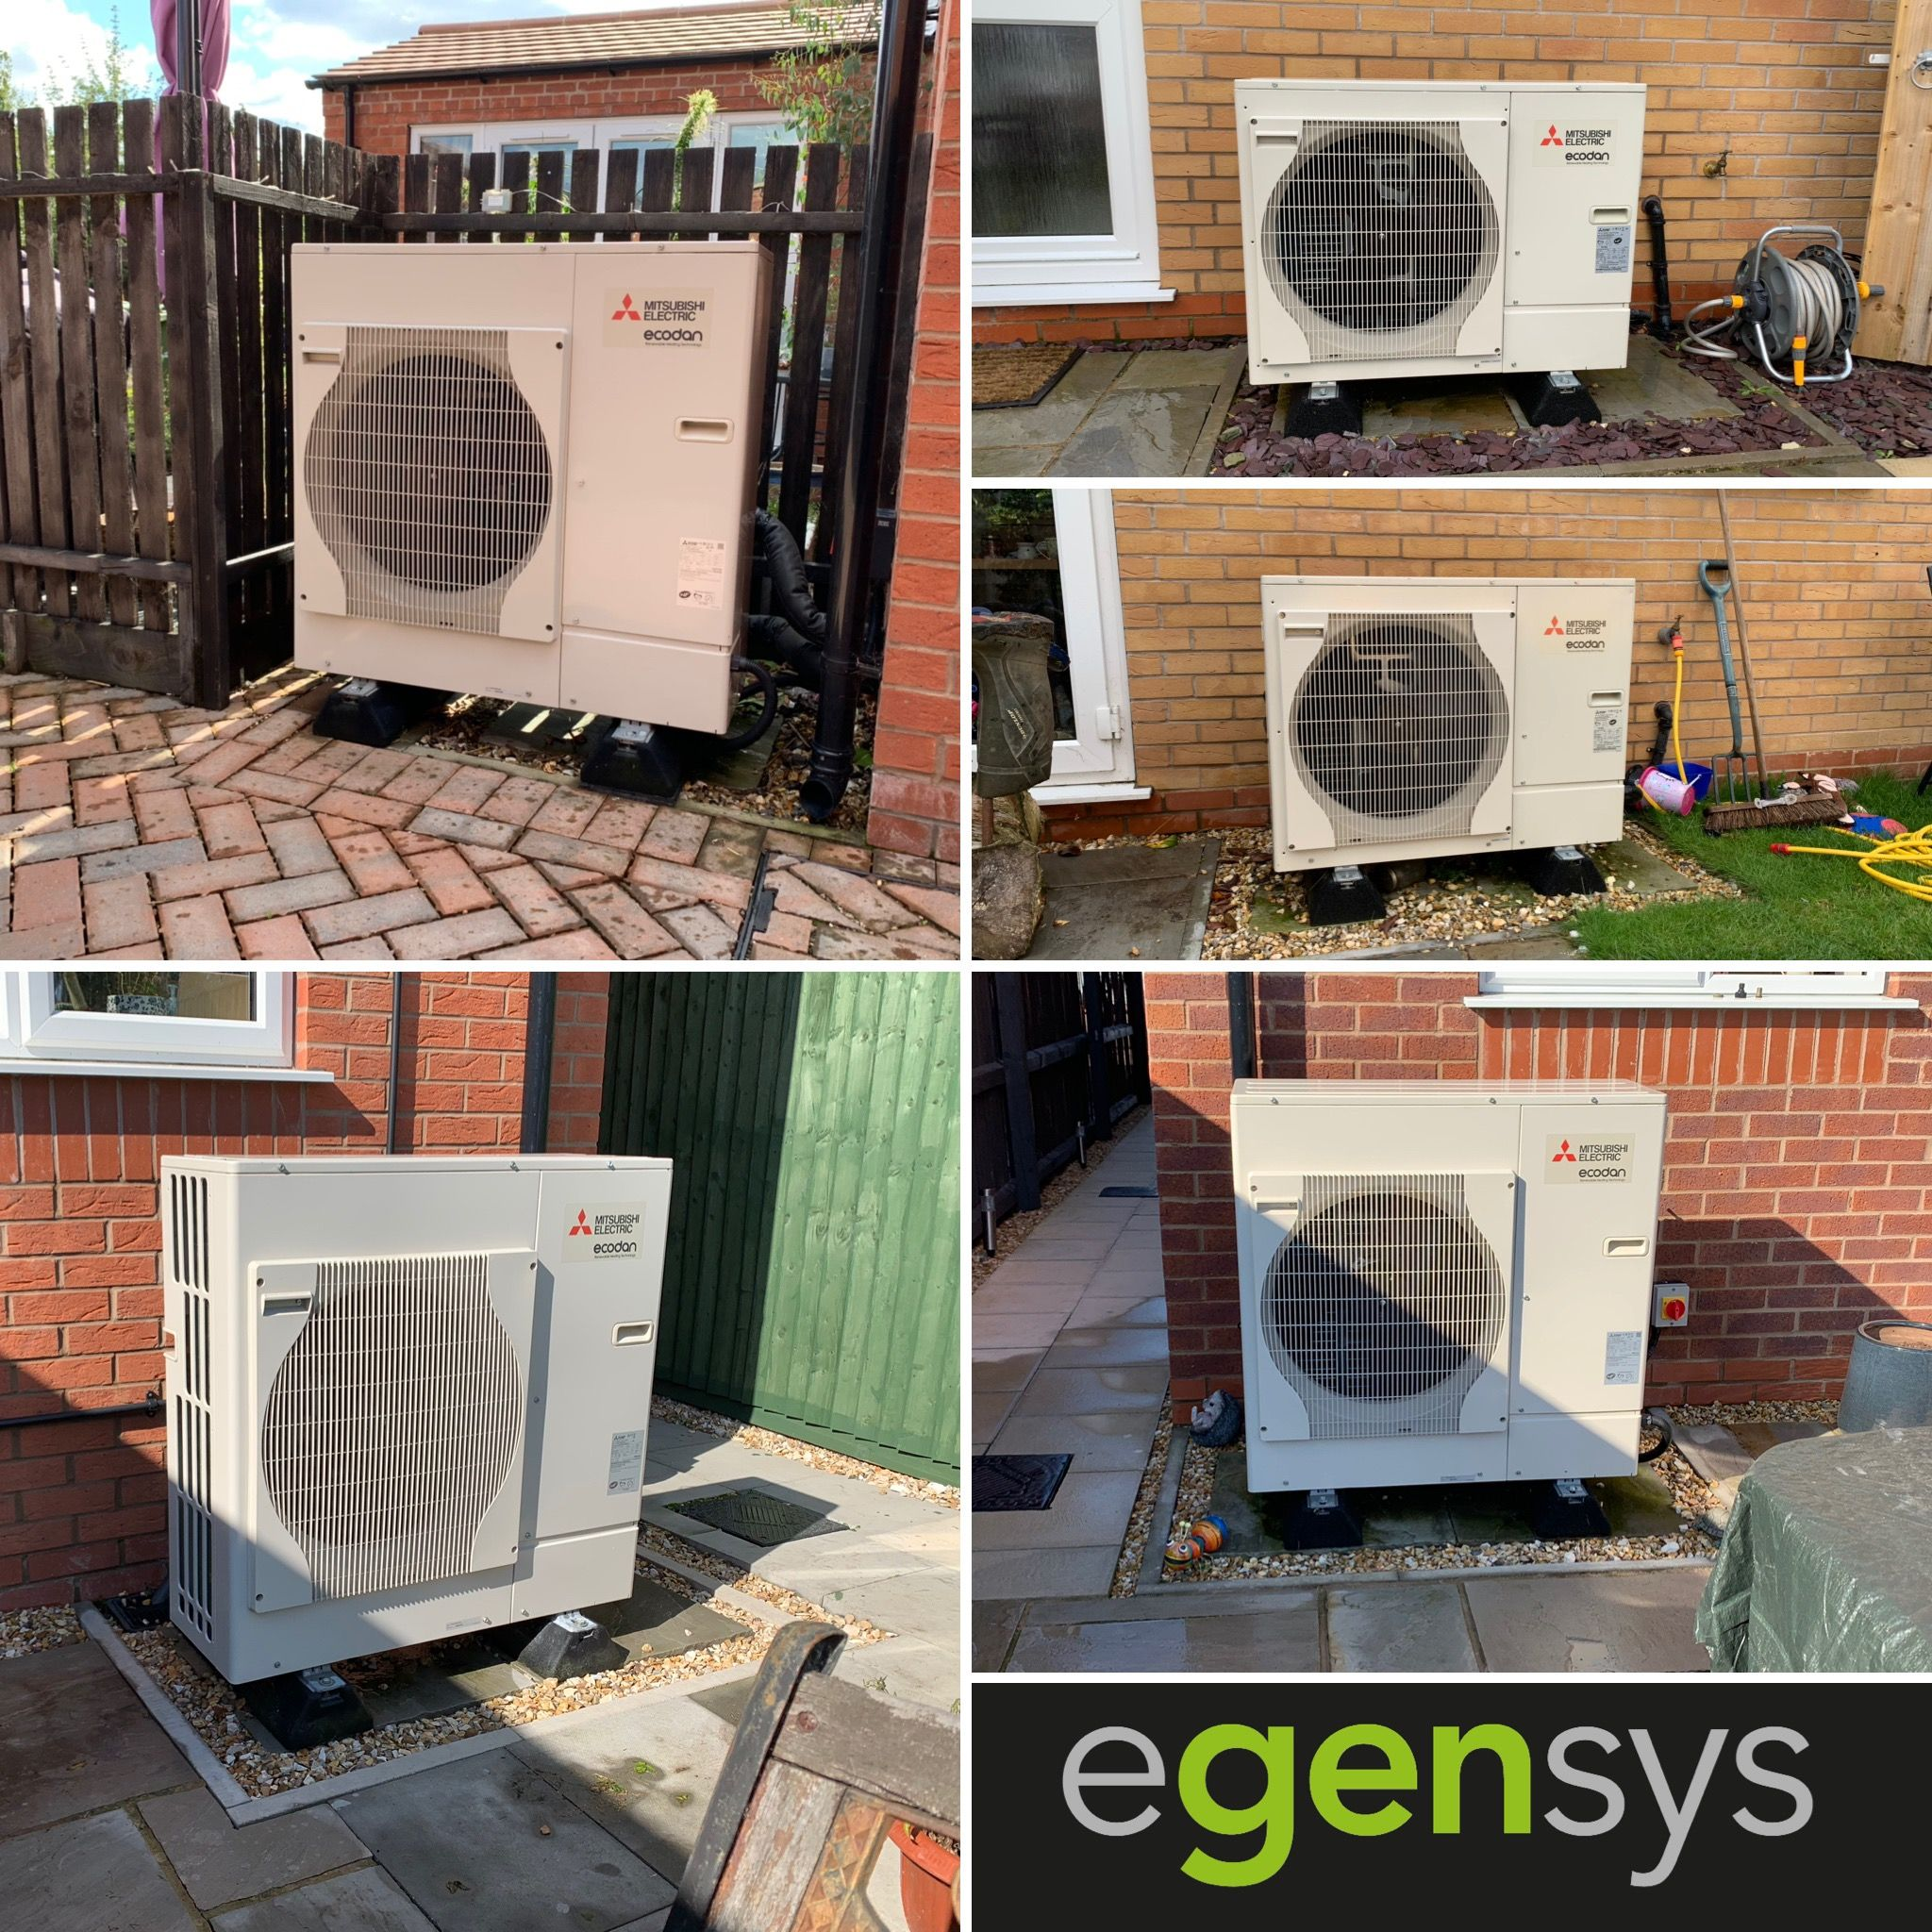 Air Source Heat Pumps are a standard installation